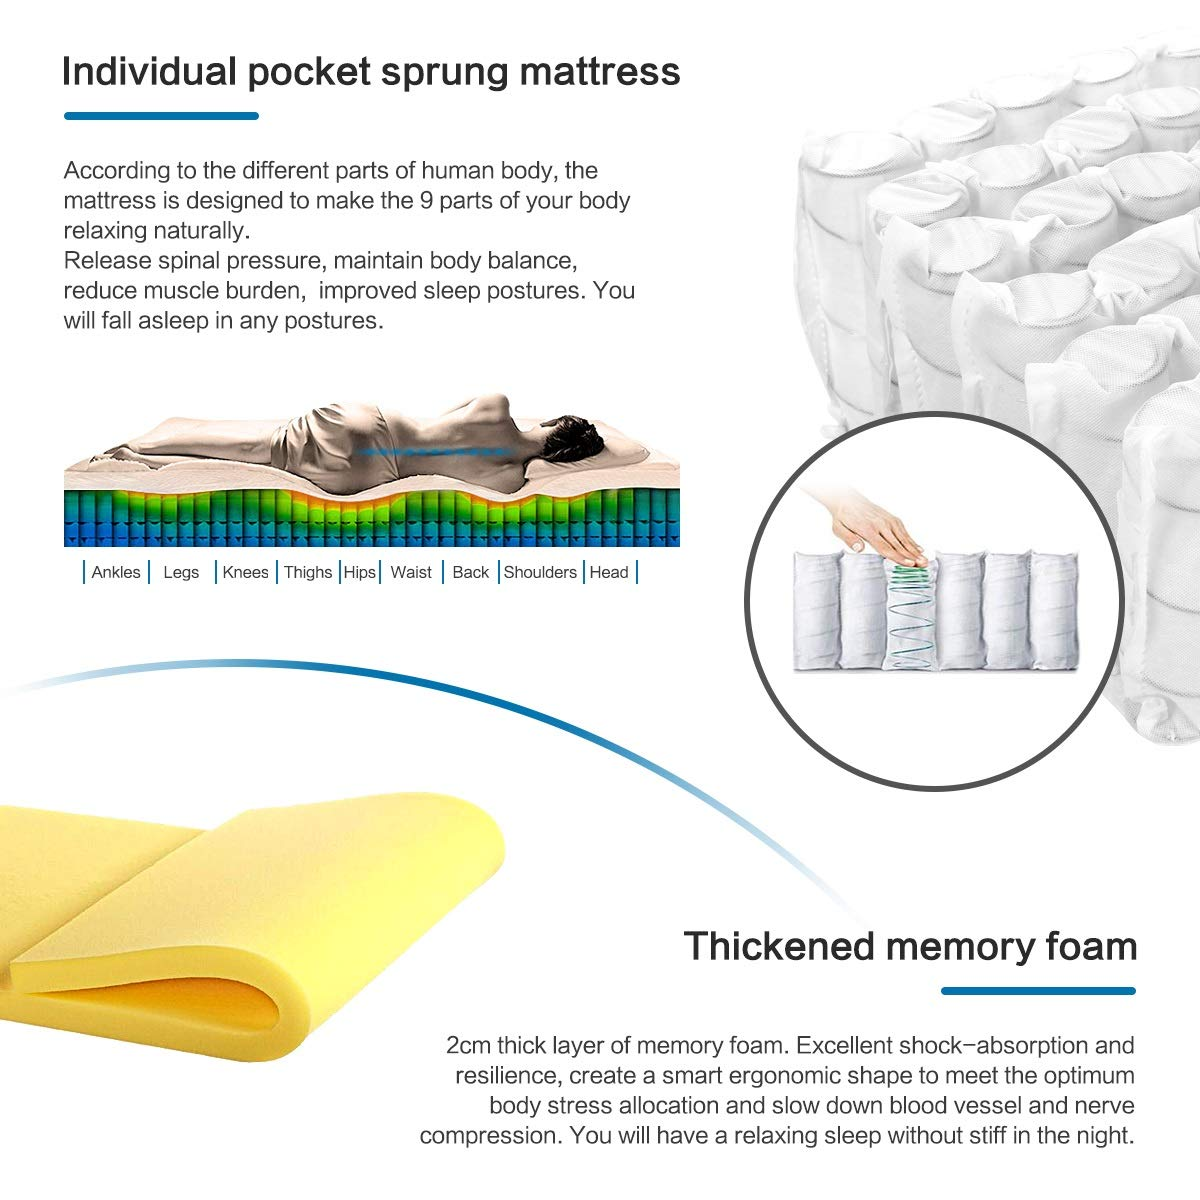 HomyLink 4FT6 Pocket Sprung Mattress Double Size with Wave Foam Water-proof Knitting Fabric Orthopaedic (9 Inch Height): Amazon.es: Hogar